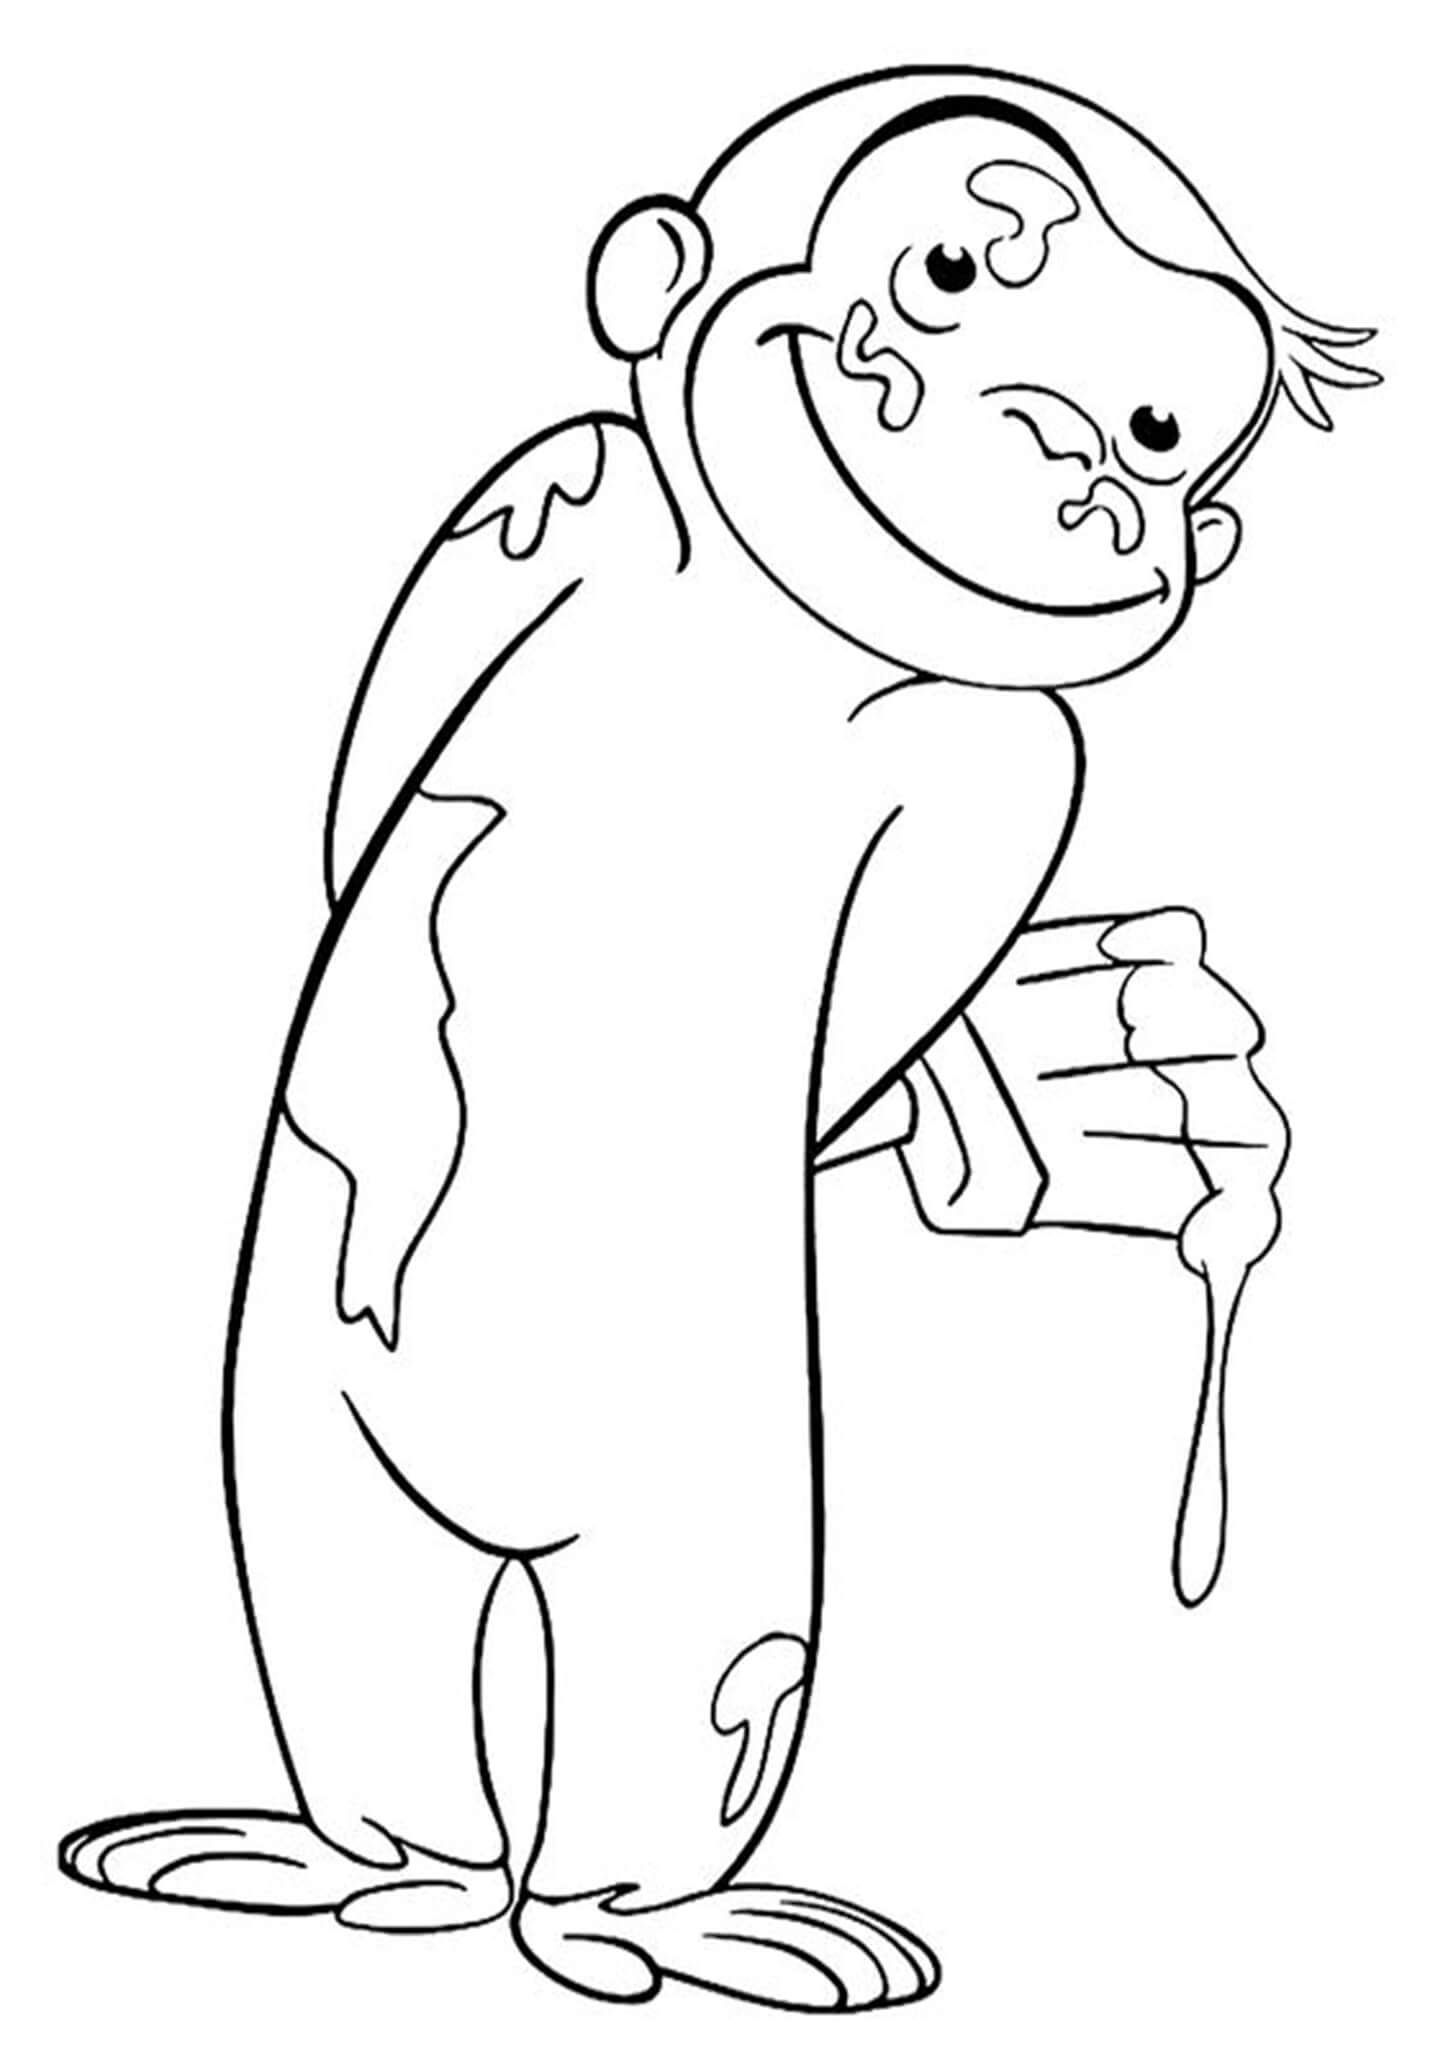 Free Easy To Print Curious George Coloring Pages In 2021 Curious George Coloring Pages Cartoon Coloring Pages Coloring Books